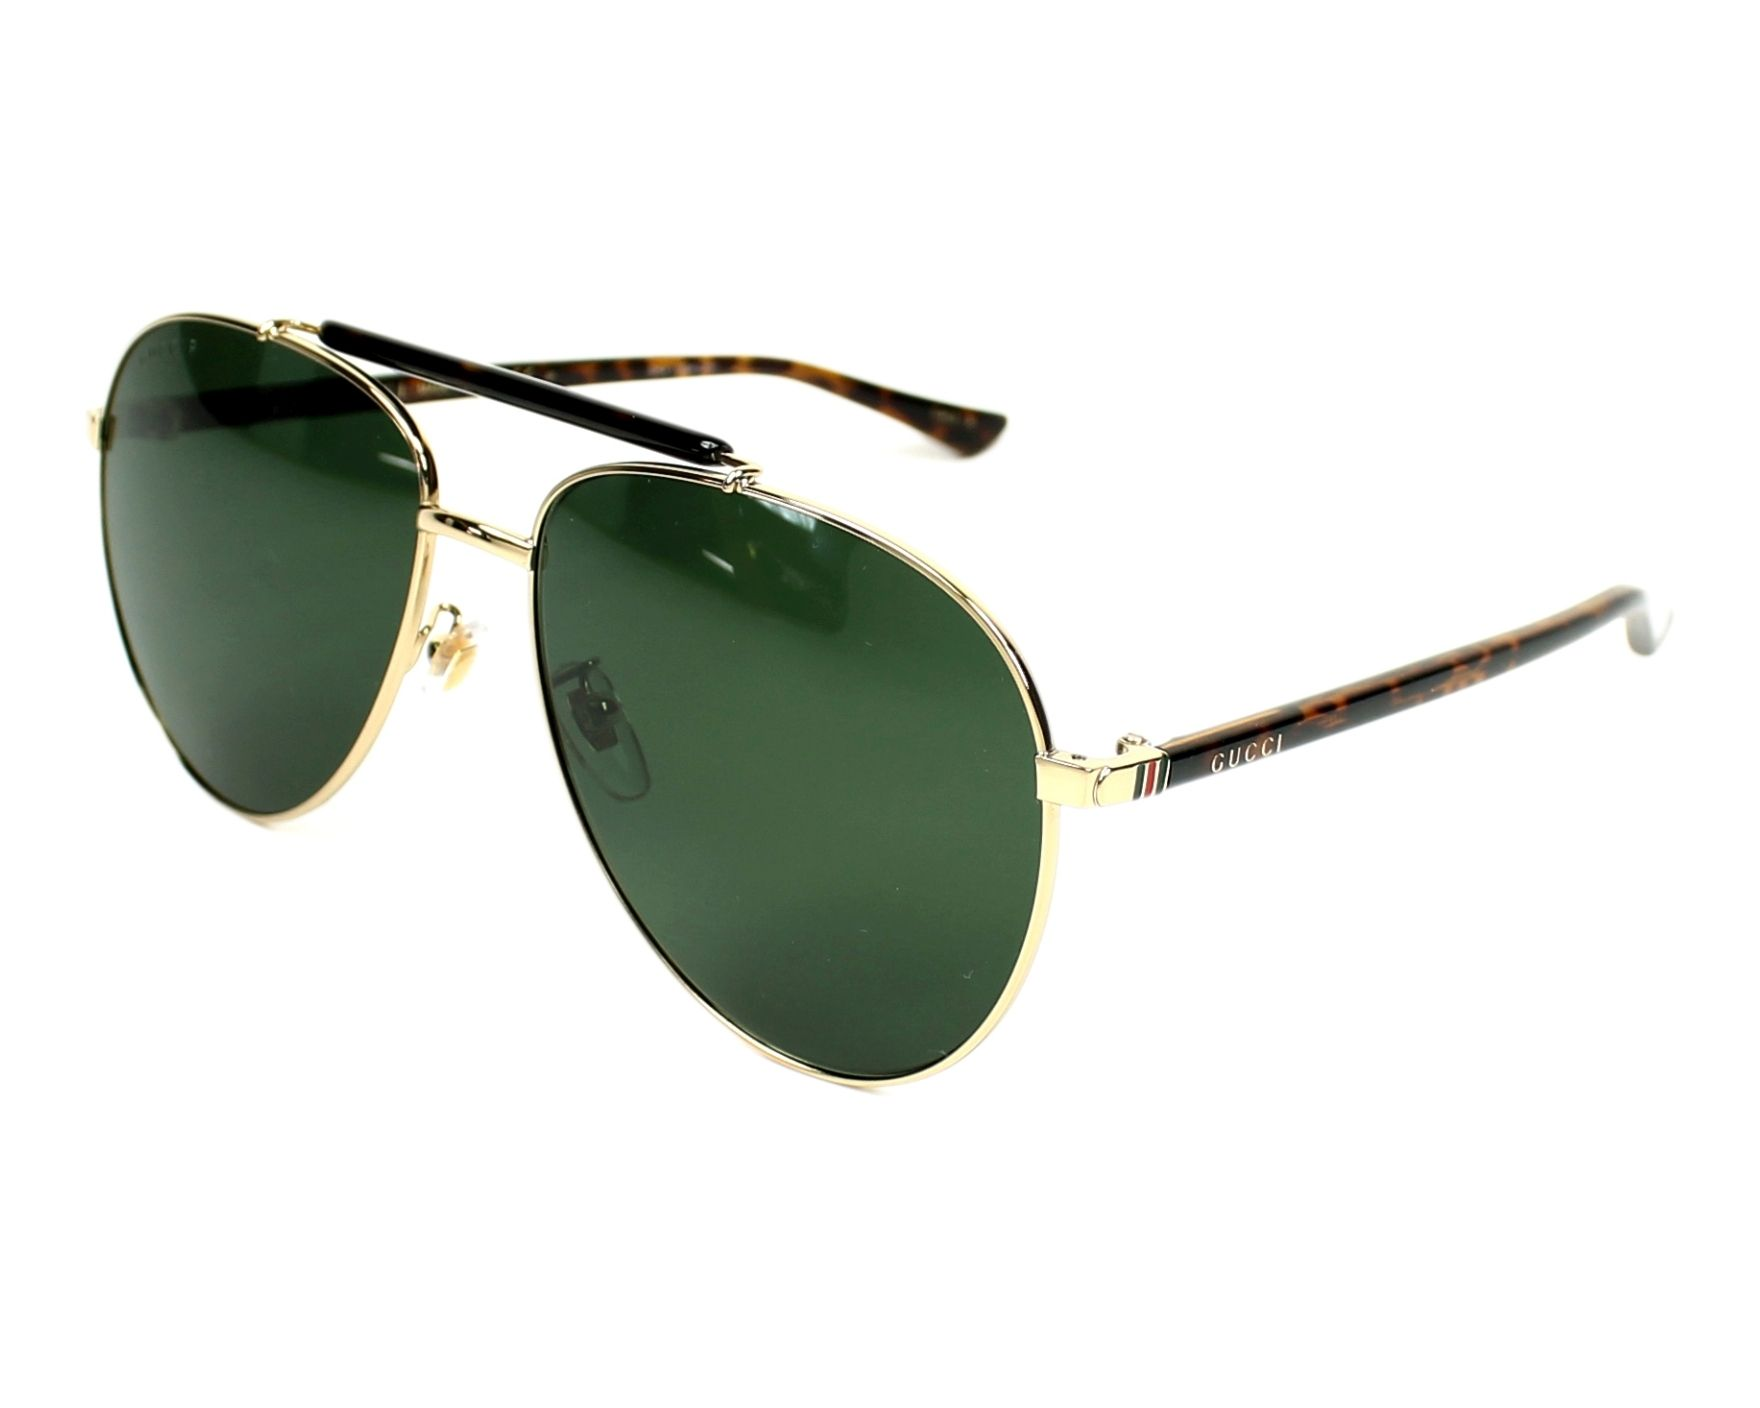 1665b78bf45 Sunglasses Gucci GG-0014-S 006 60-15 Gold Havana profile view